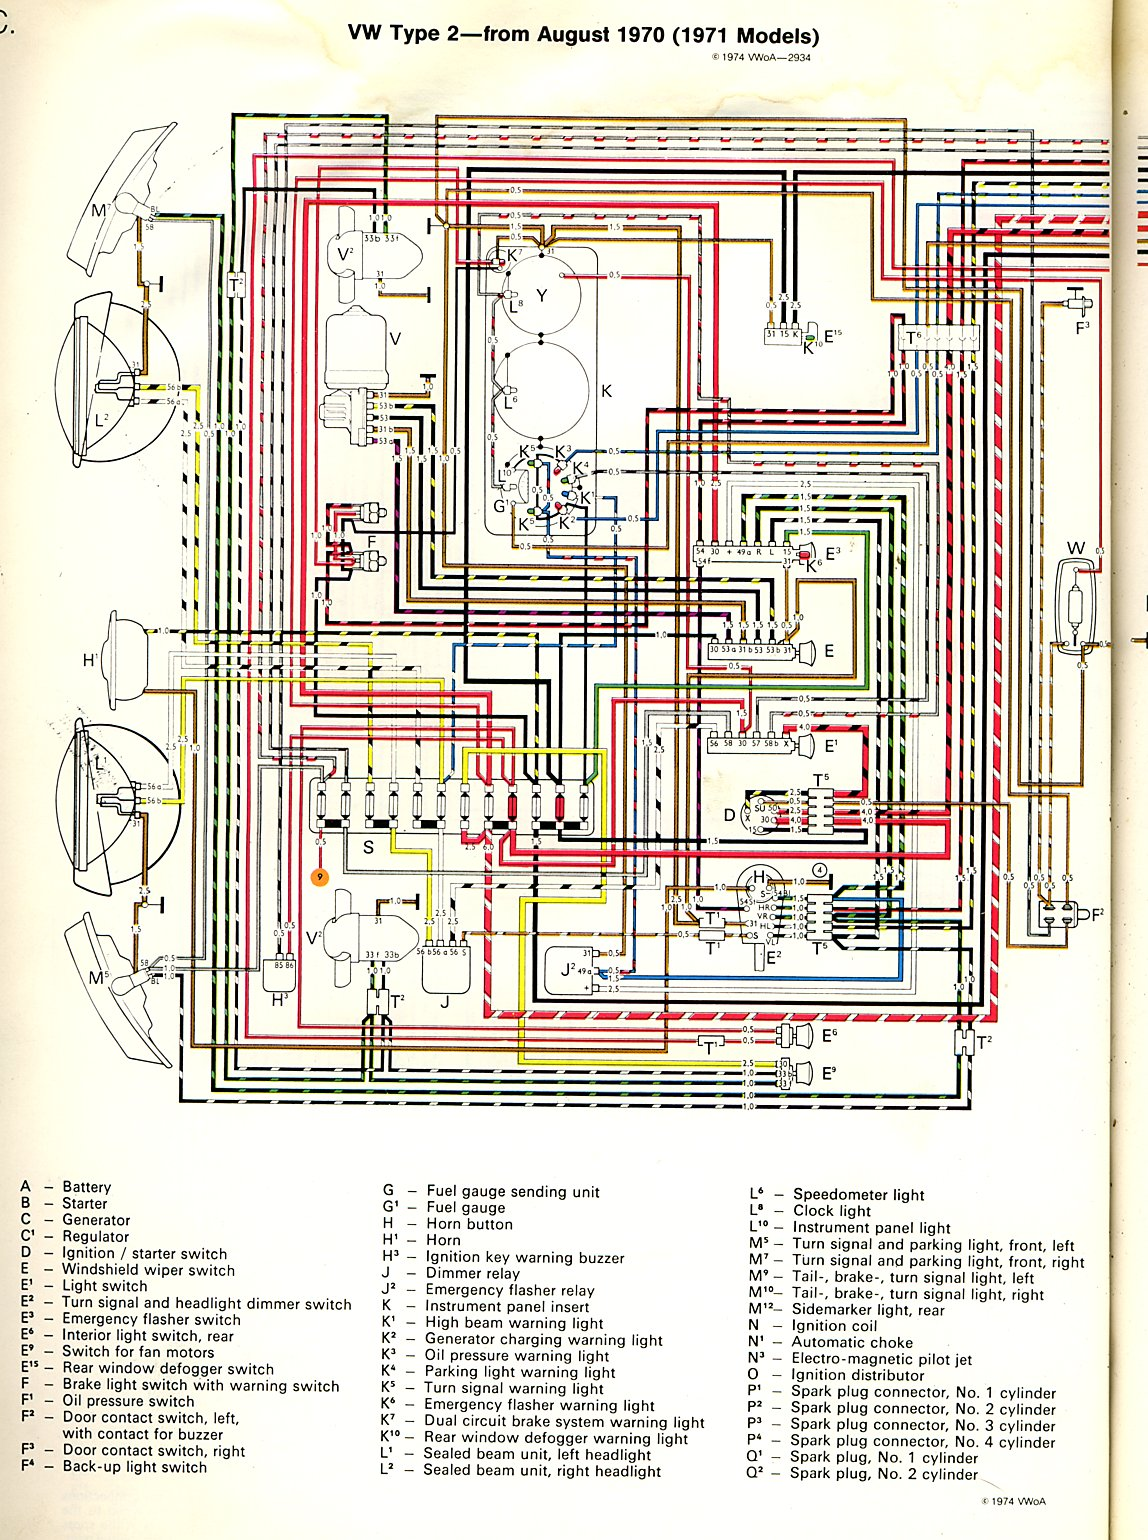 82 Corvette Fuse Box Wiring Library Diagram 73 Vw Bus Diagrams Schematics U2022 Rh Schoosretailstores Com 78